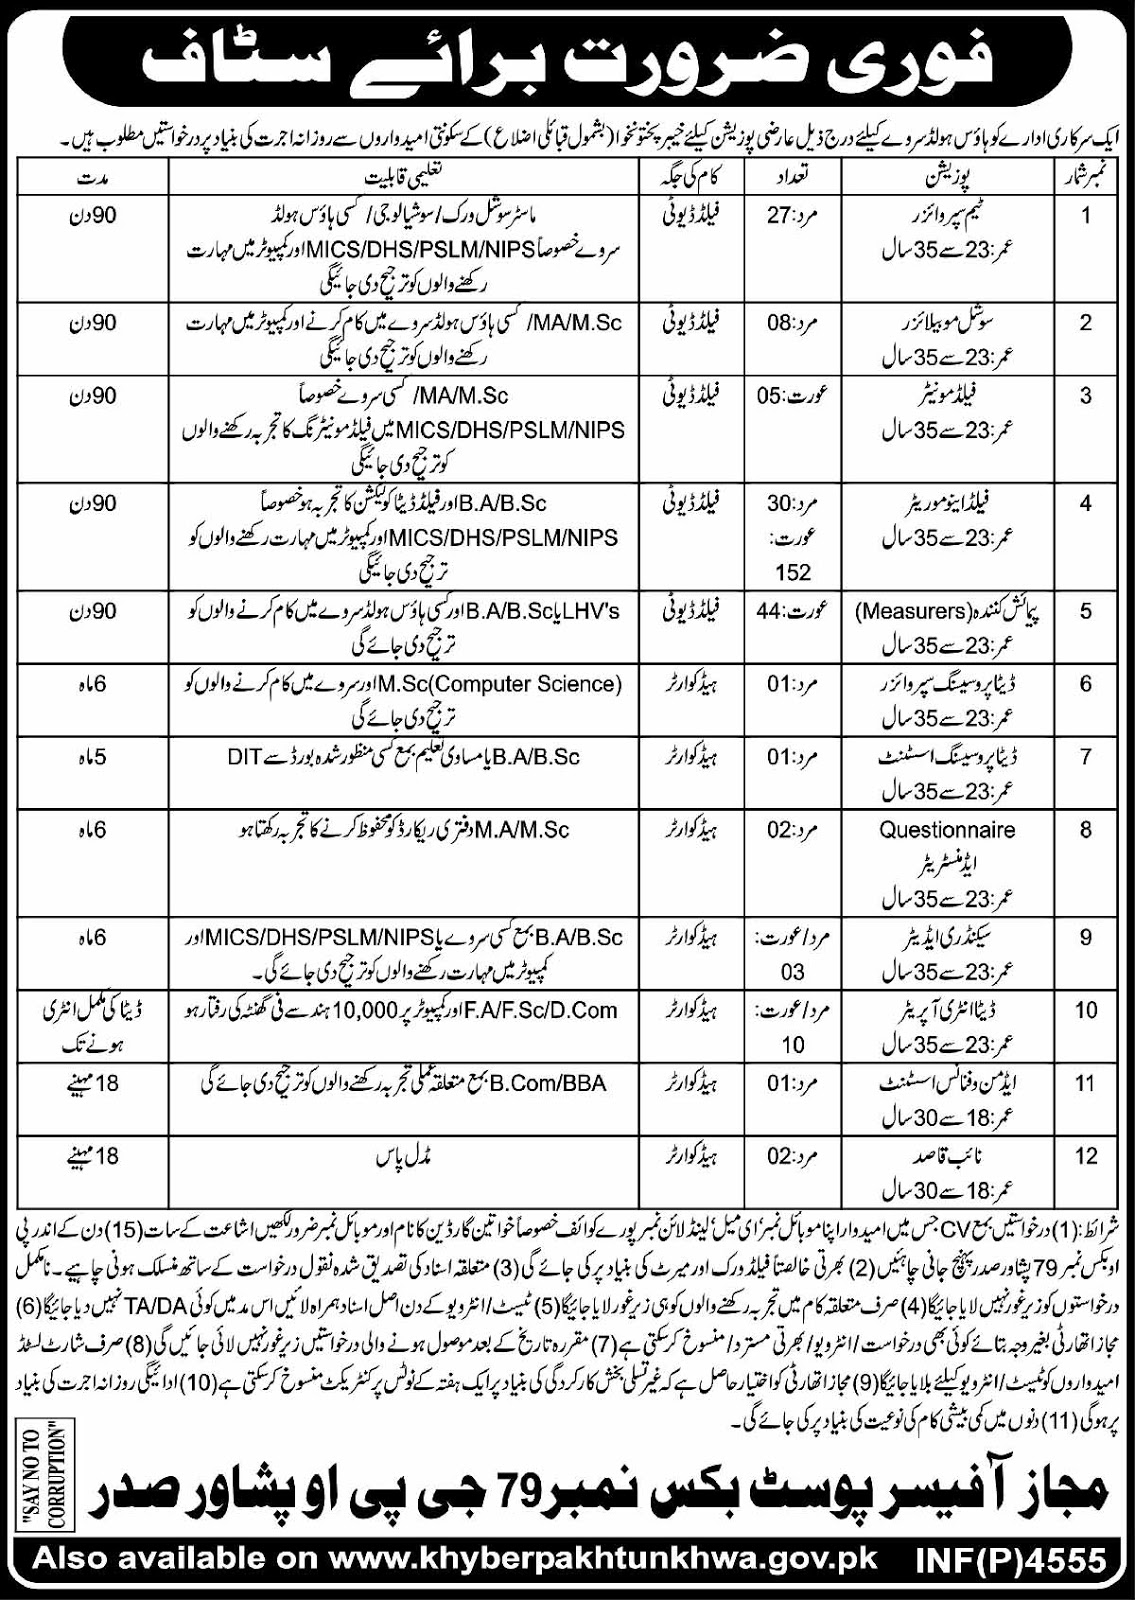 Govt Jobs in Khyber Pakhtunkhwa for Male and Female for Survey House